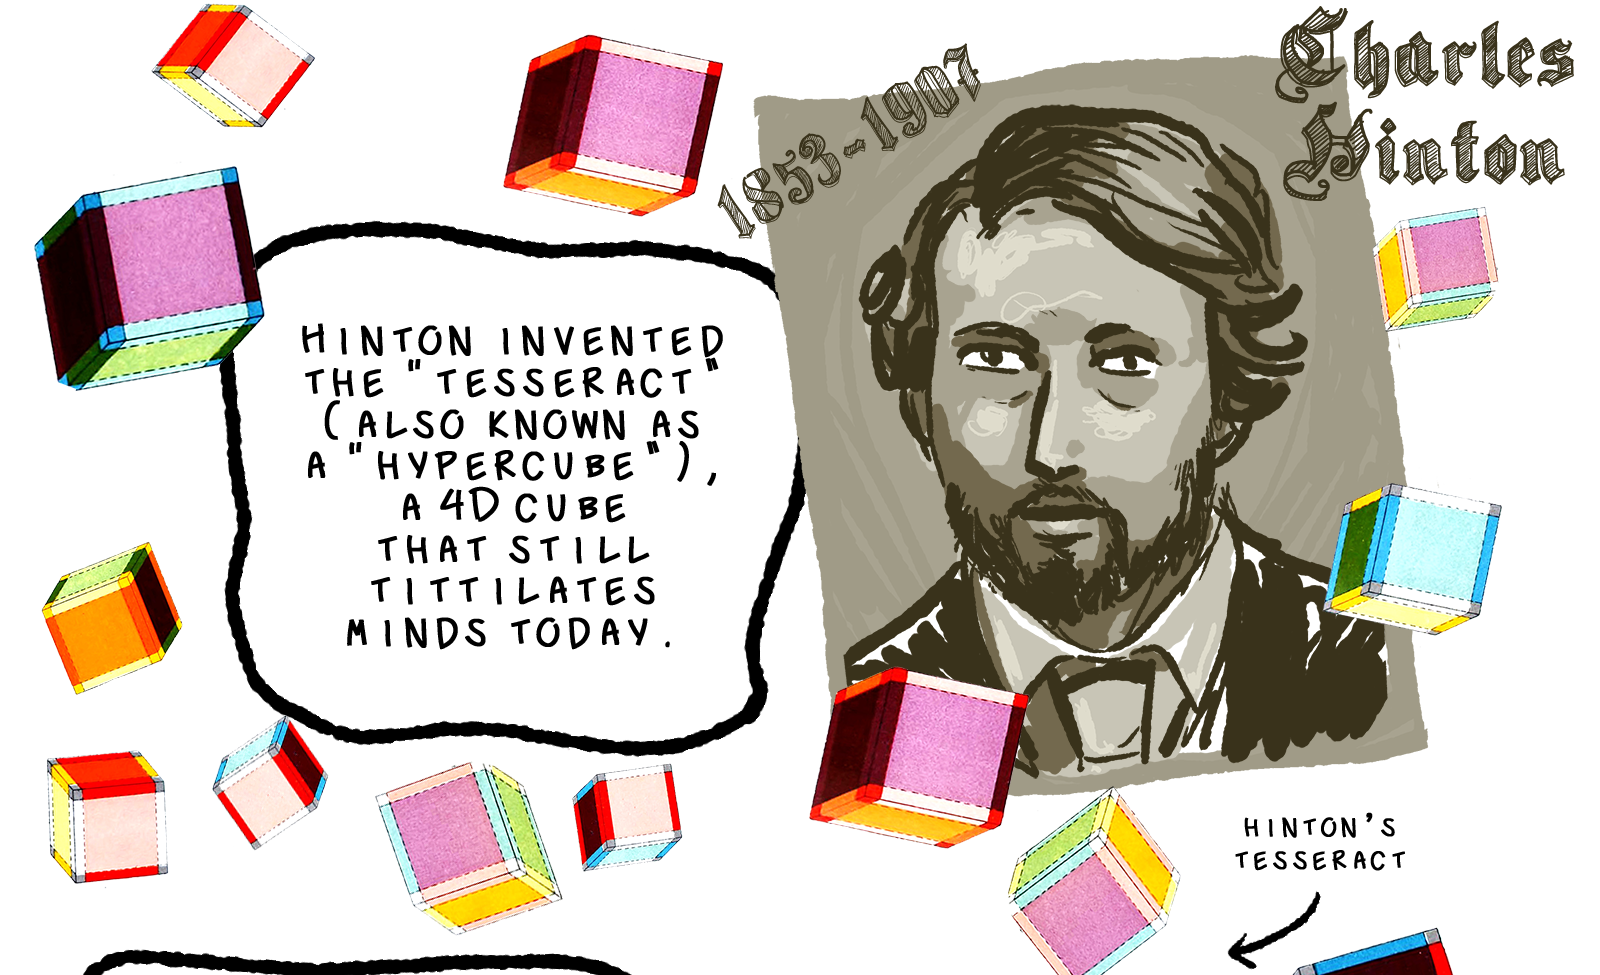 A text box reads, Hinton invented the tesseract, also known as a hypercube, a 4D cube that still titillates minds today. We see a portrait of Charles Hinton that looks like an old black-and-white photograph, and he is surrounded by floating tesseracts. He is labelled in old-timey lettering, Charles Hinton, 1853-1907.